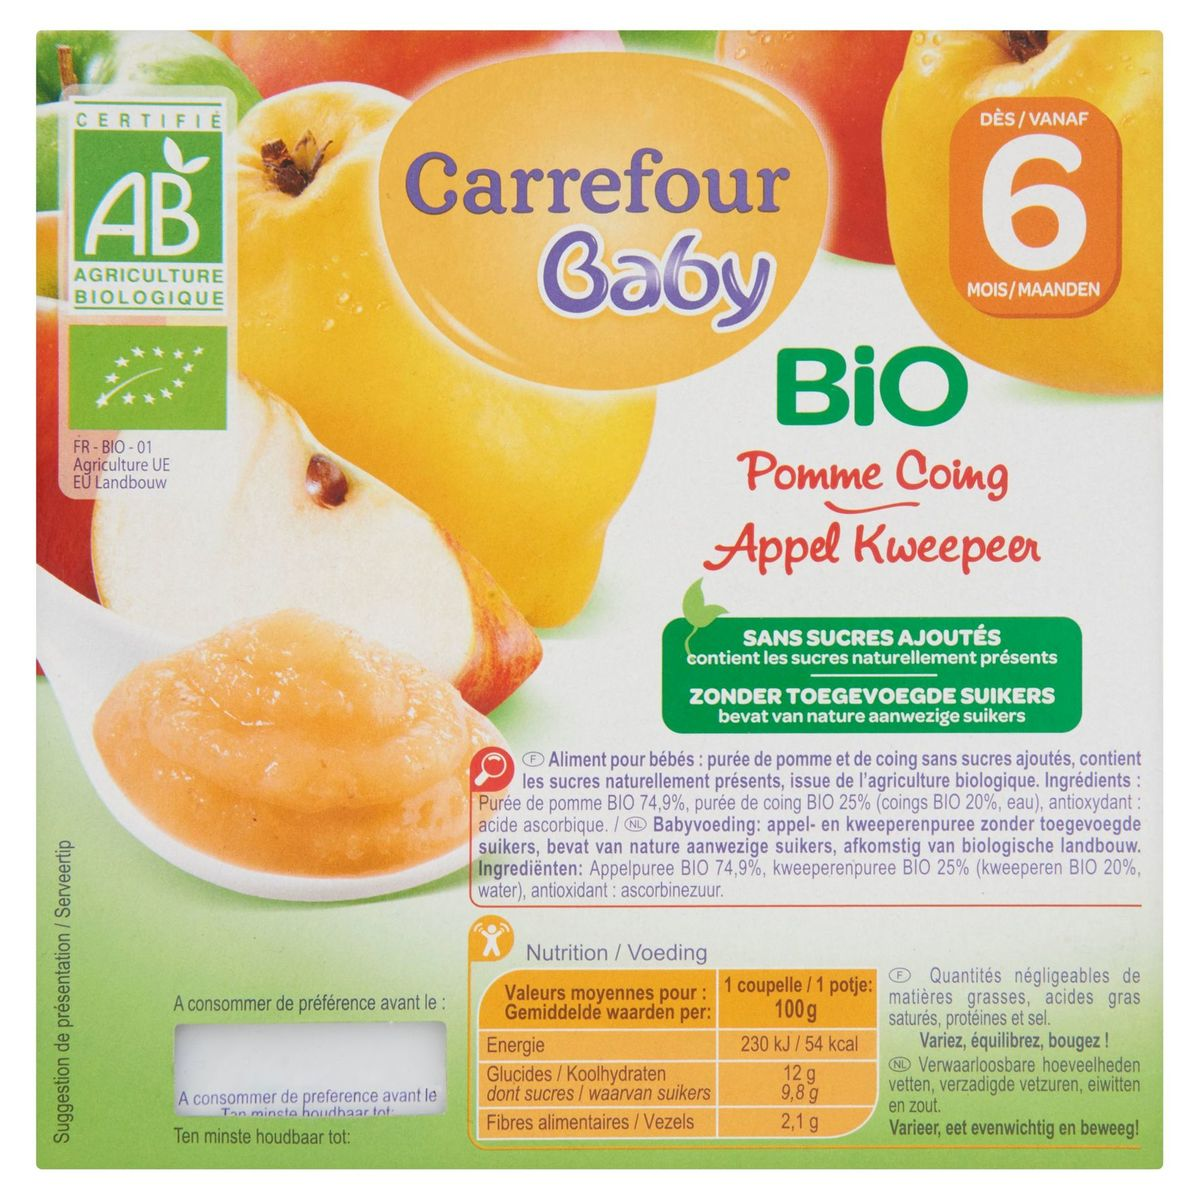 Carrefour Baby Bio Pomme Coing dès 6 Mois 4 x 100 g